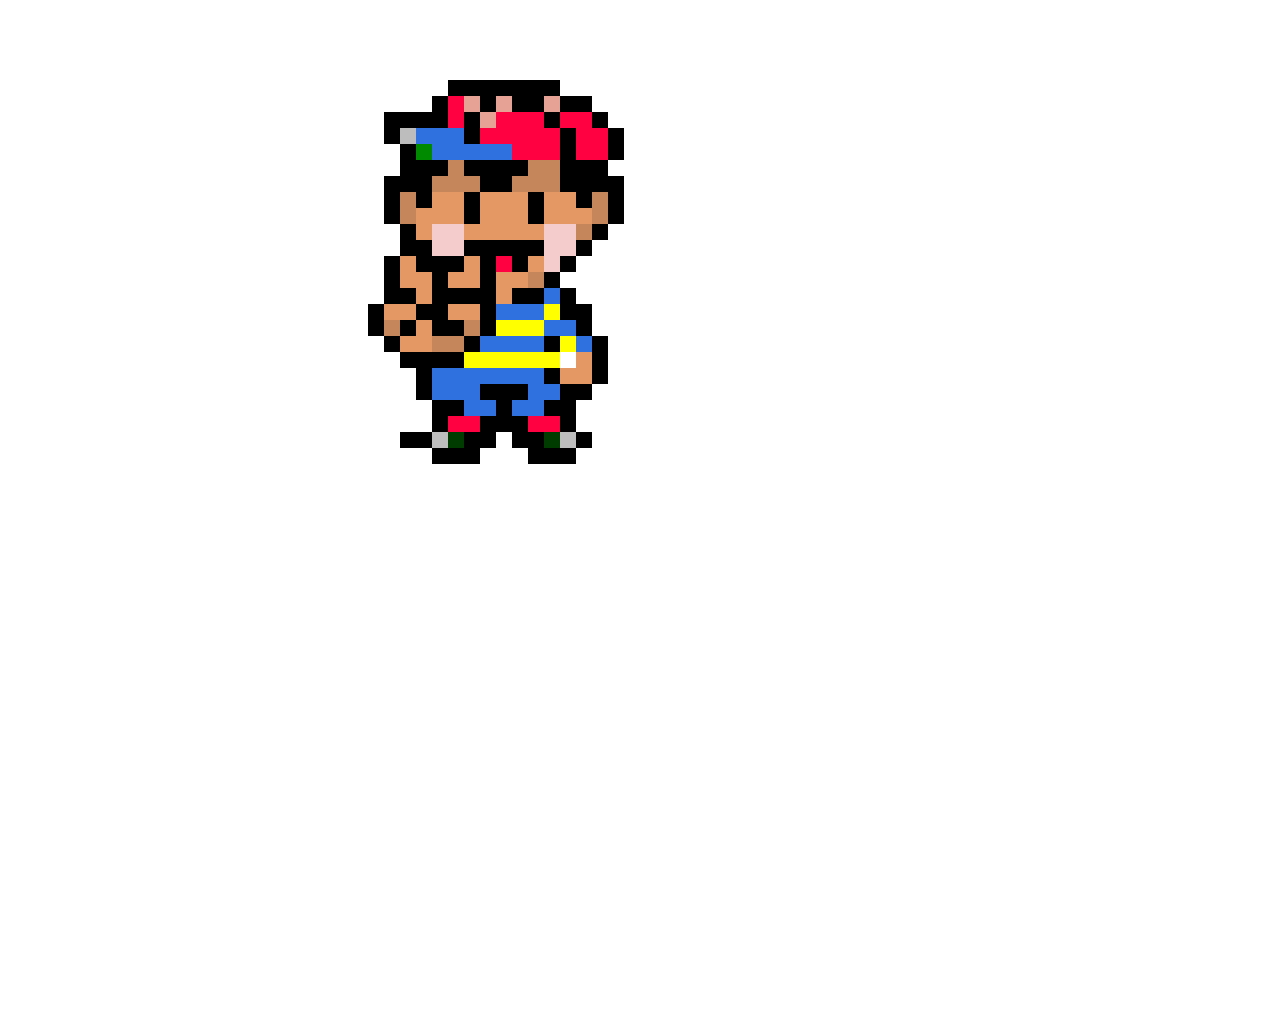 Ness from Earthbound (Might be wrong colors, fix if u can)